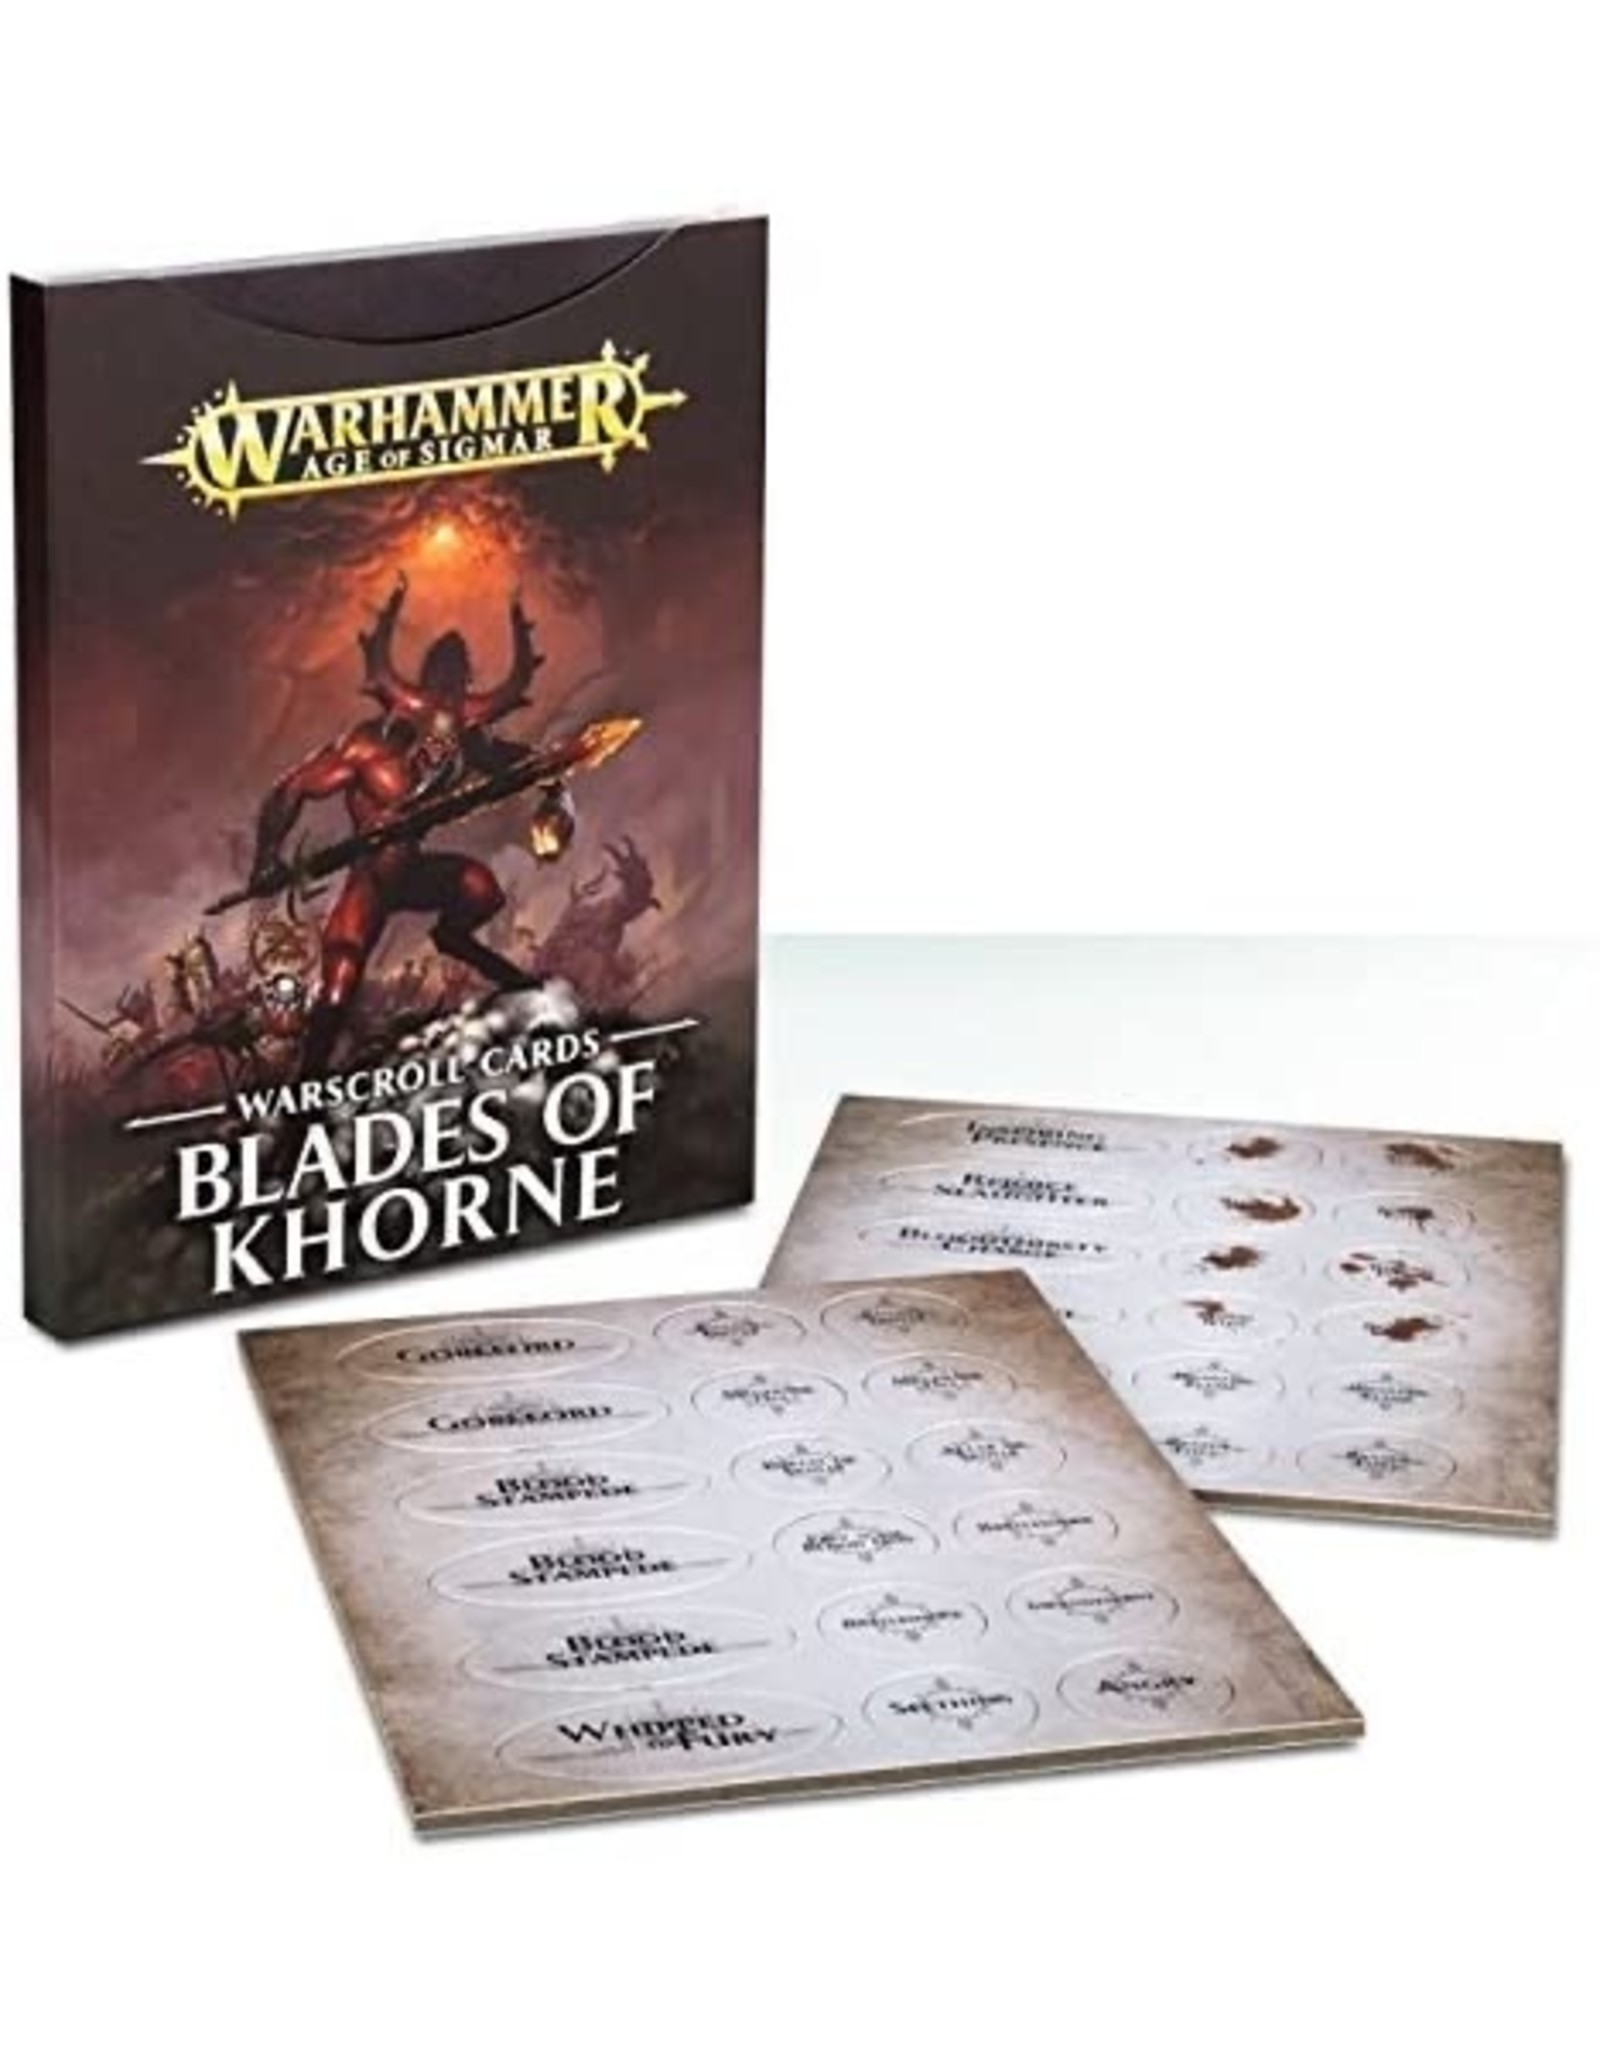 Games Workshop Blades of Khorne Warscroll Cards